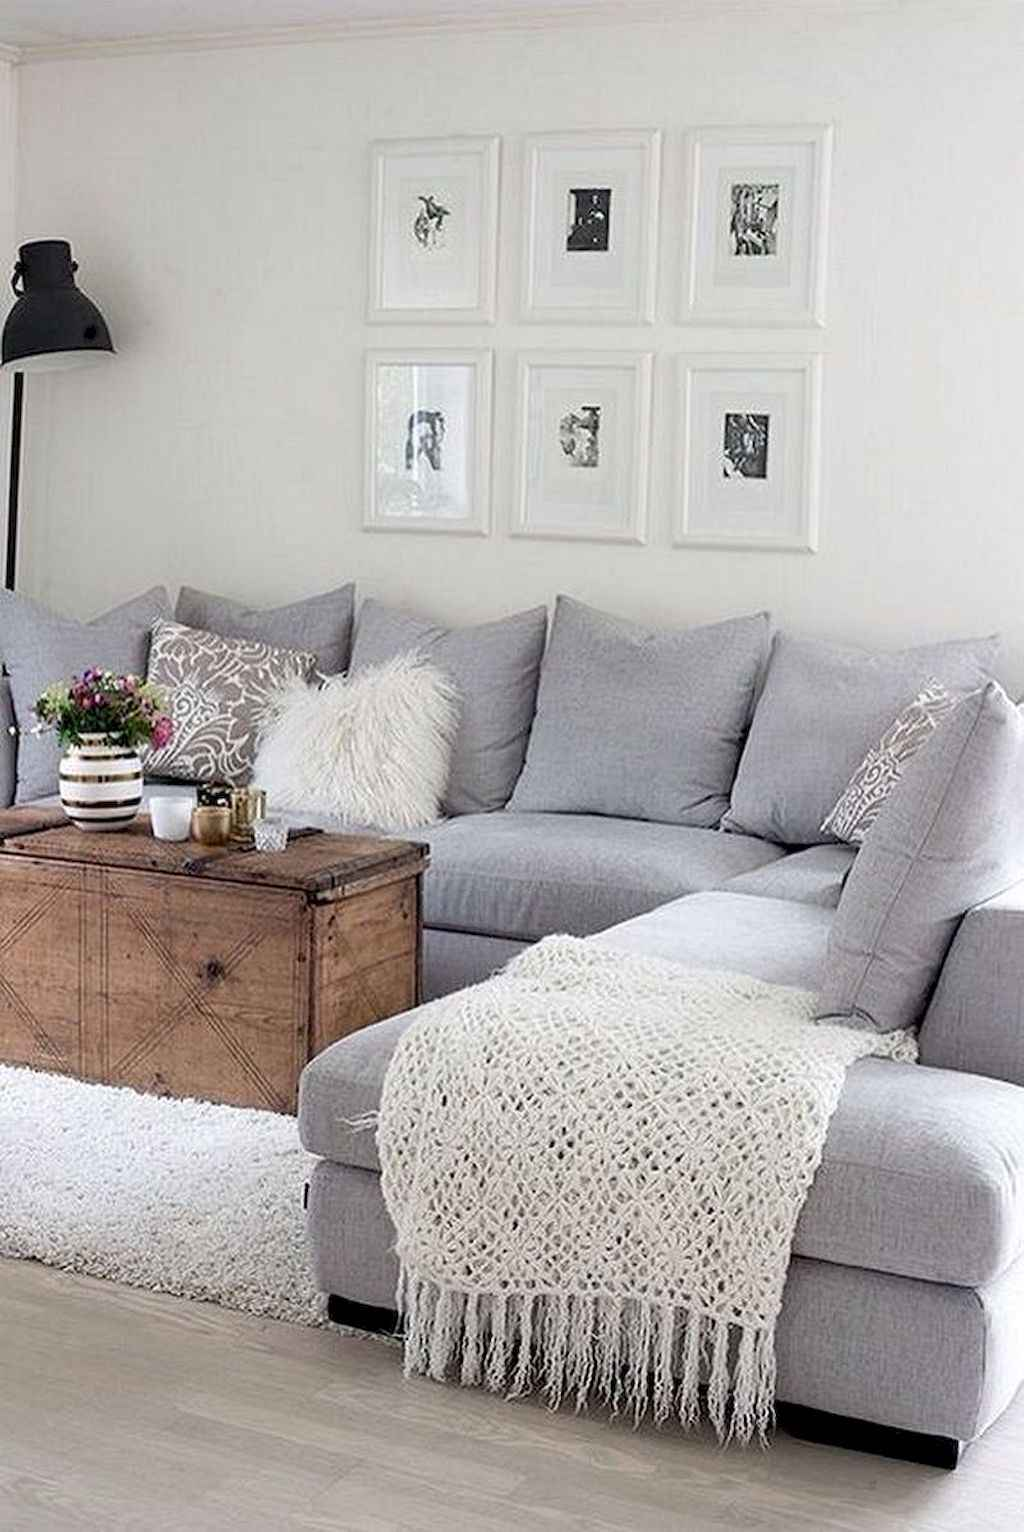 Amazing small first apartment decorating ideas (23)